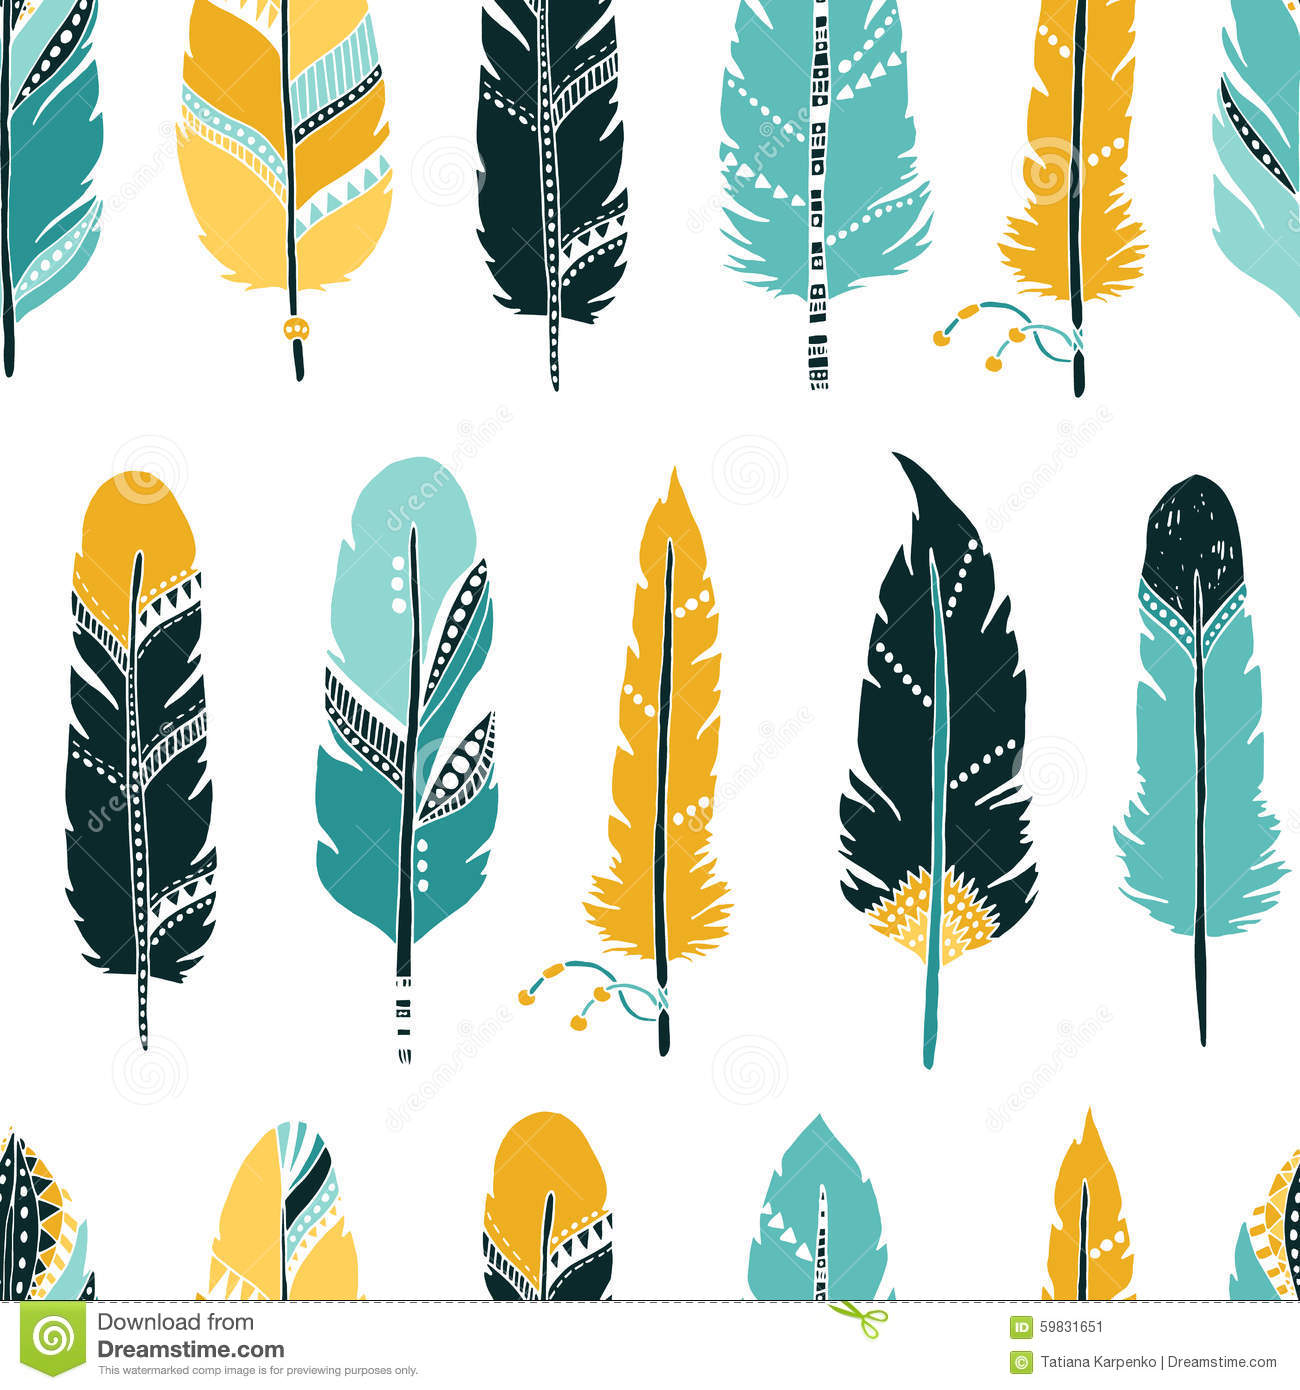 Feather background stock vector. Illustration of ancient ...